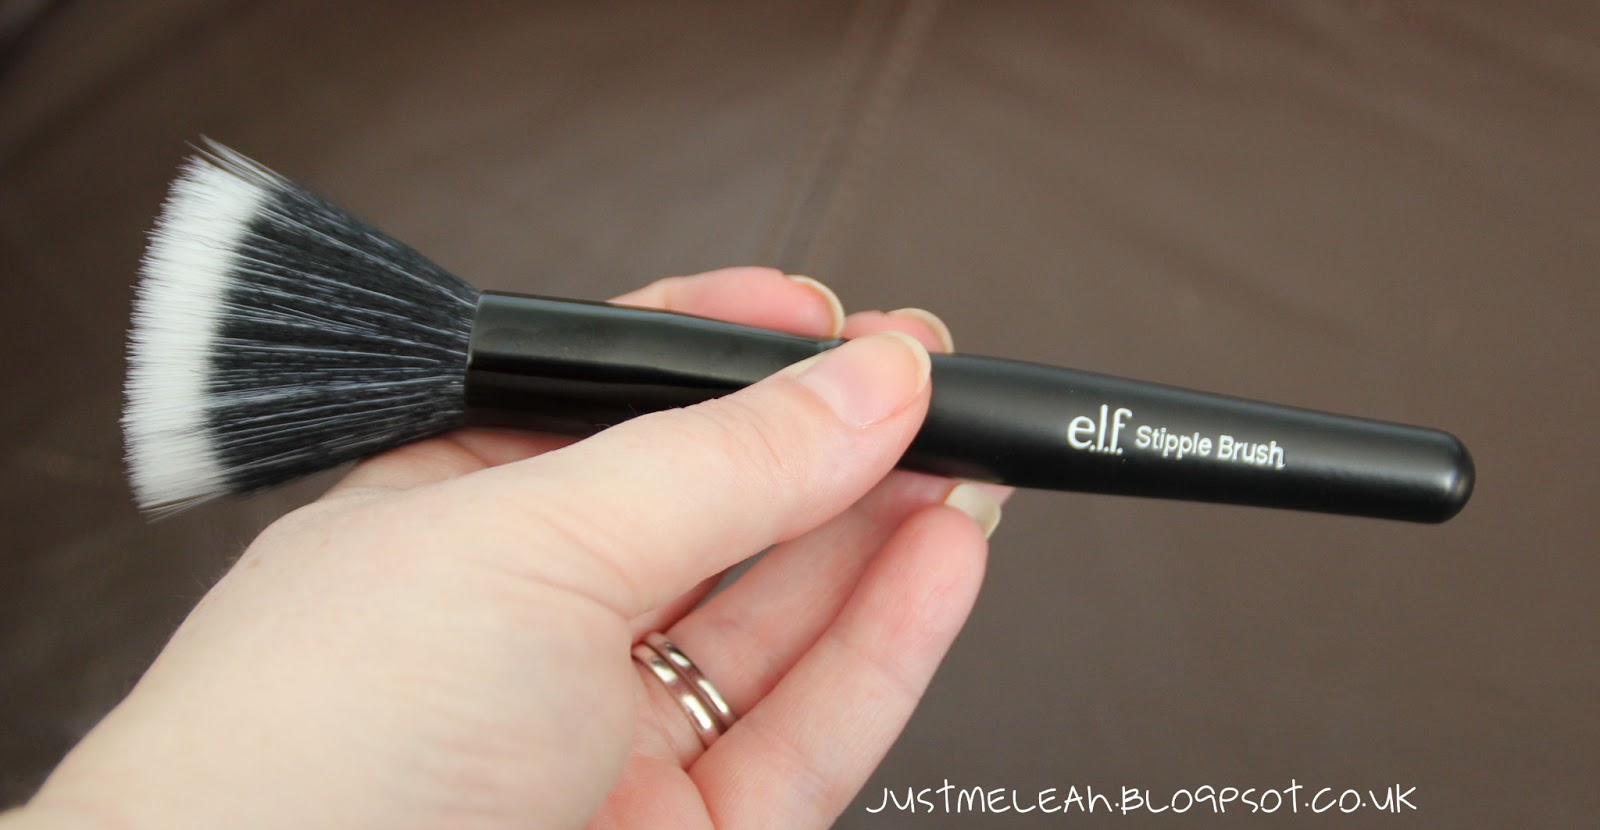 new elf brushes. i bought both the powder brush and stipple for liquid foundation. i\u0027ve seen quite a few bloggers rave on about applying new elf brushes